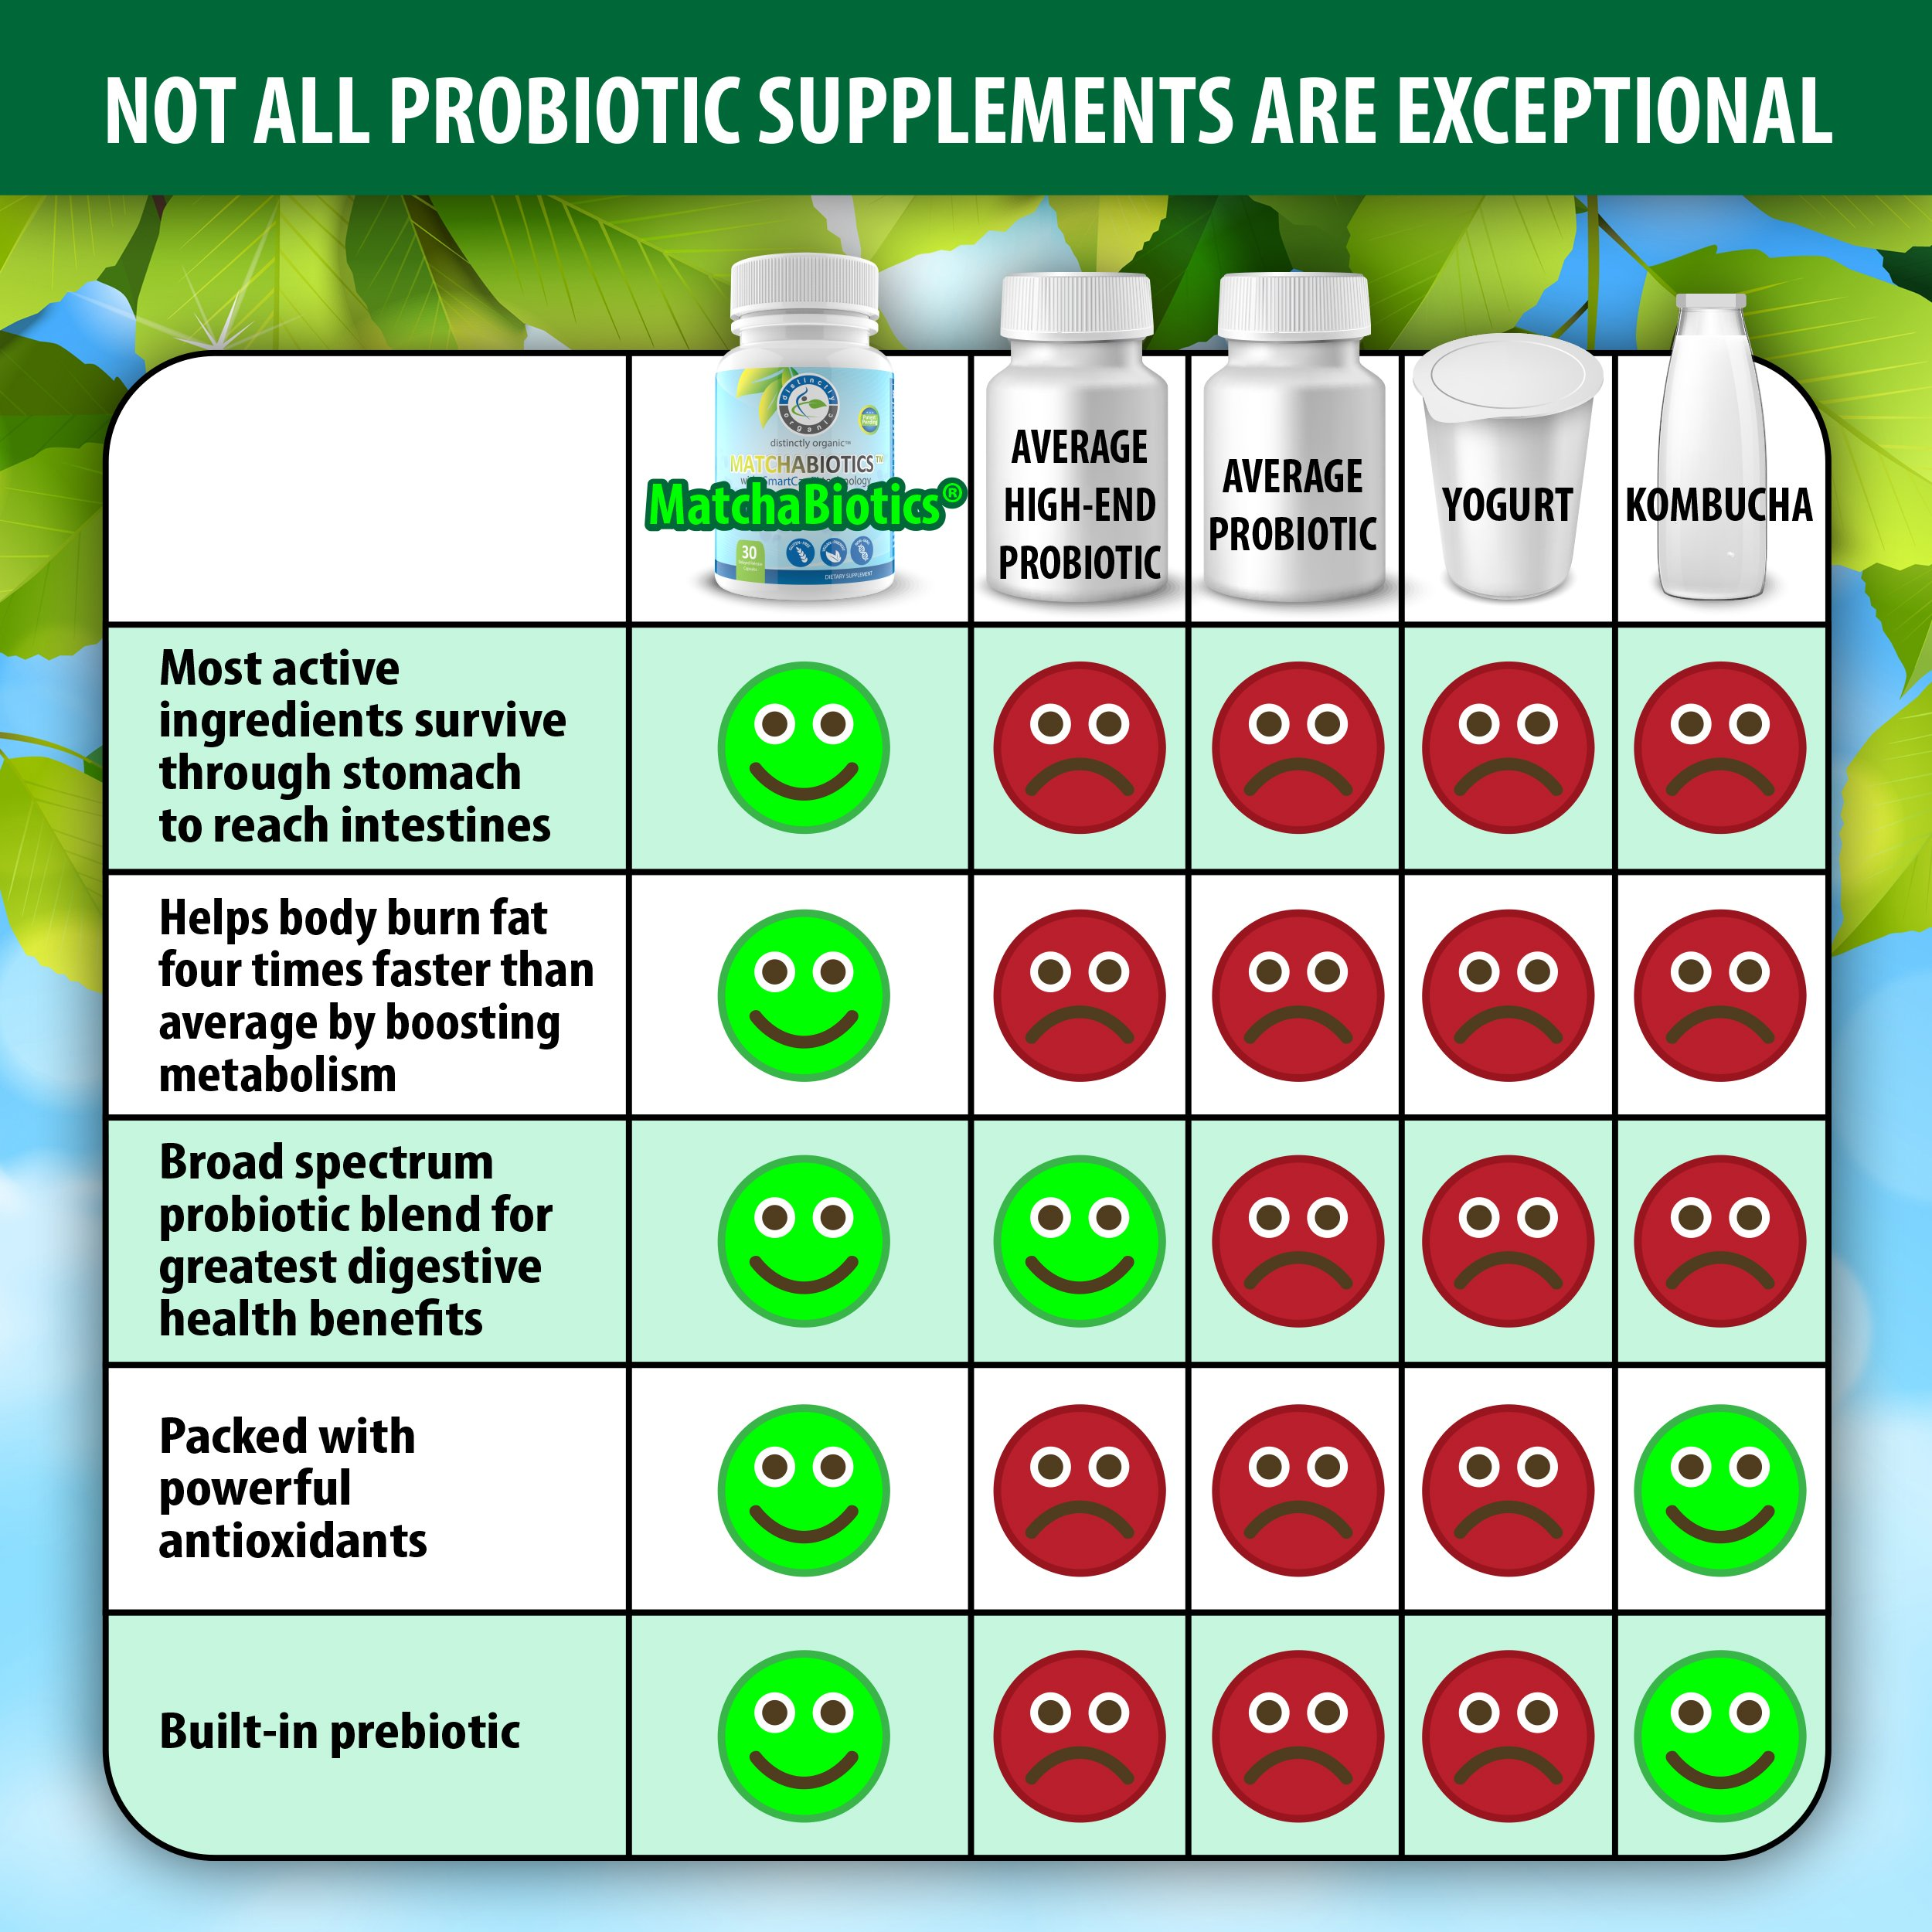 MatchaBiotics PRO-15 Organic Matcha Probiotics - 15x More Effective with Patented SmartCap Time Release Technology Plus Prebiotics - Best Probiotic Supplement for Women & Men